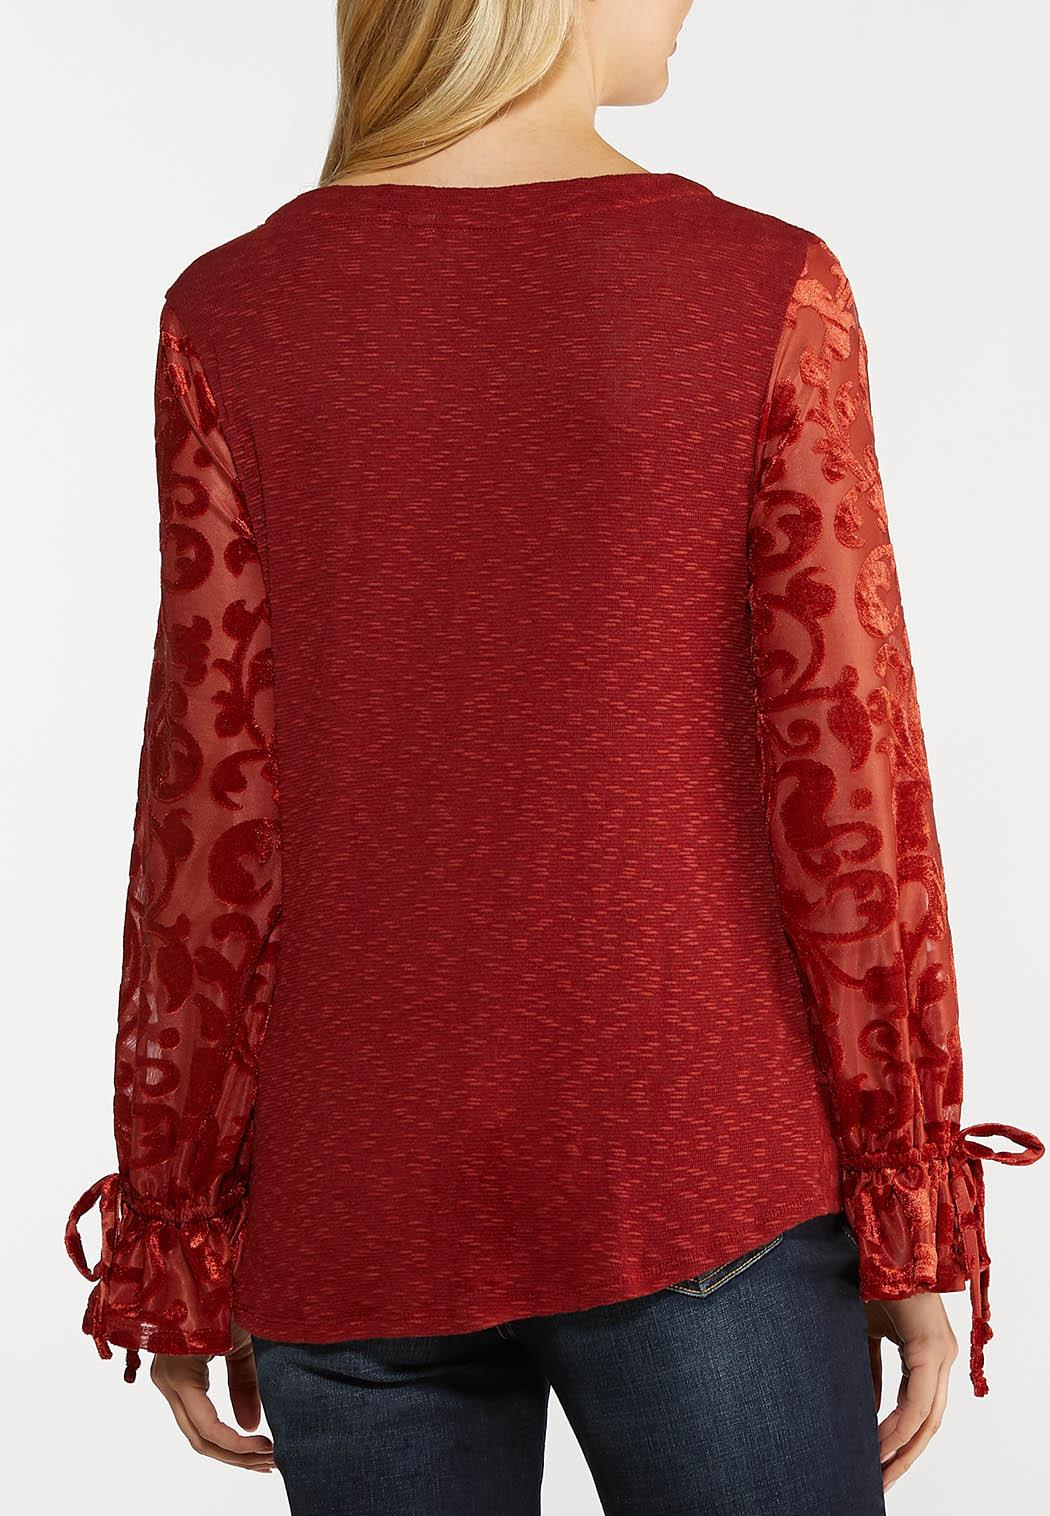 Jacquard Tie Sleeve Top (Item #44089364)